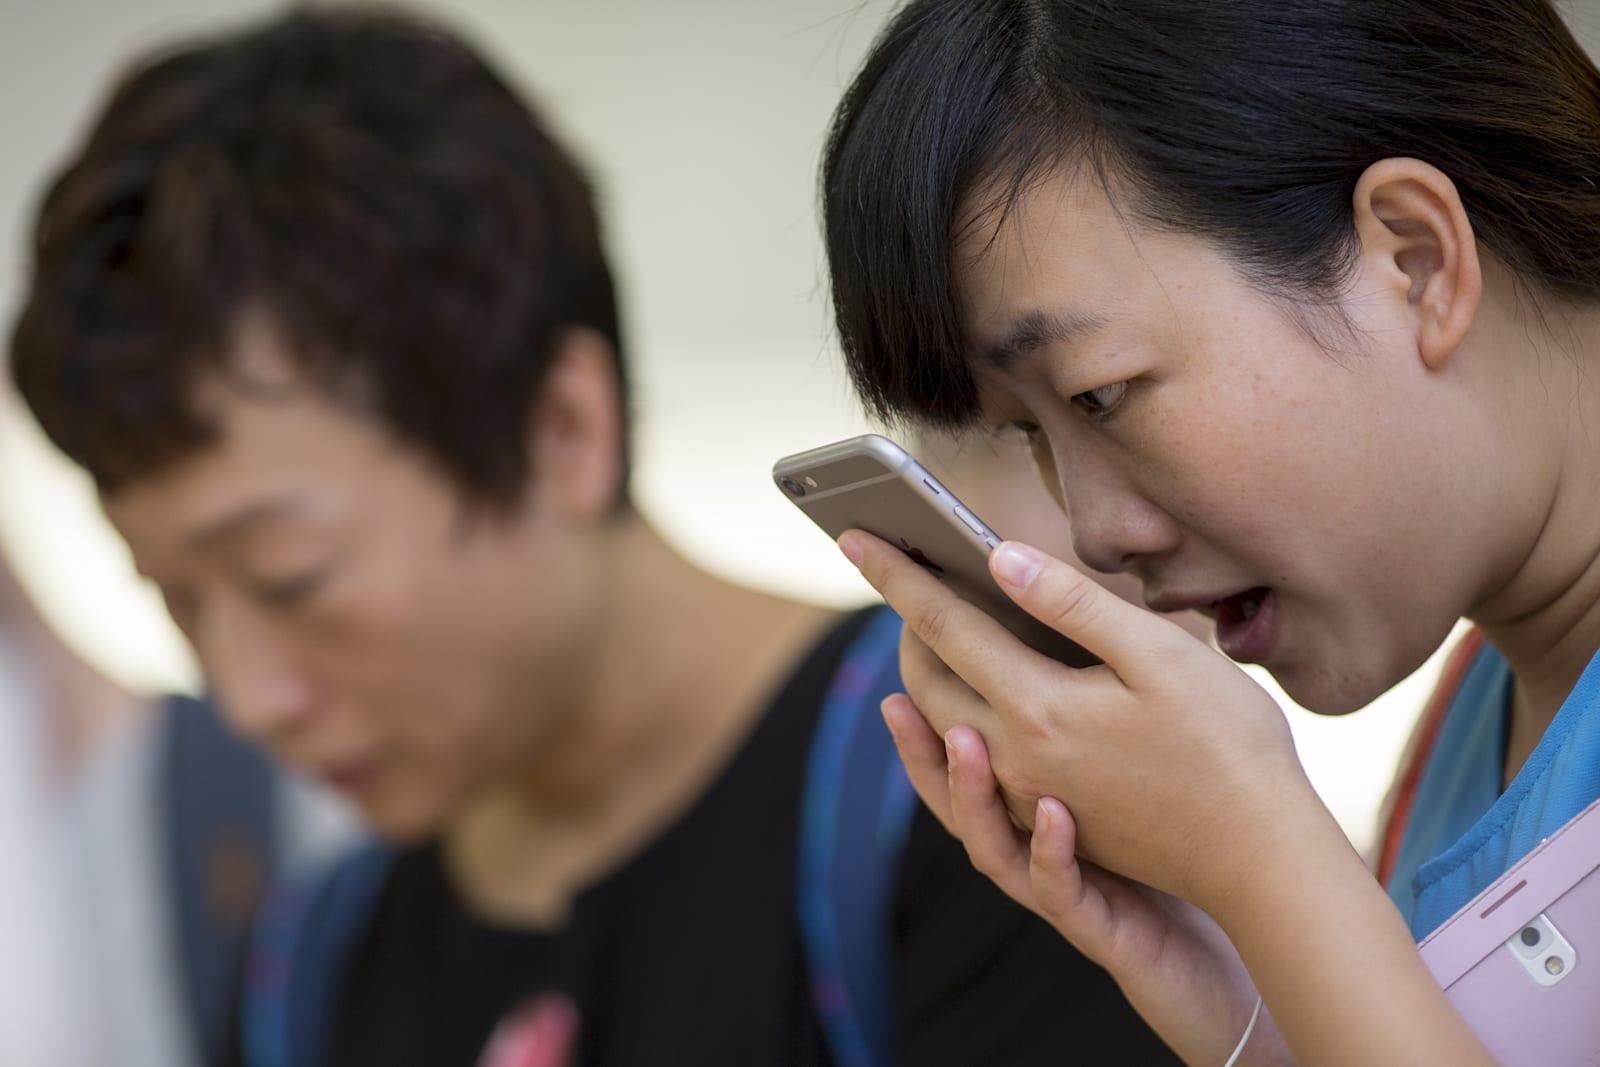 Siri cheat sheet shows how you can talk to your iPhone